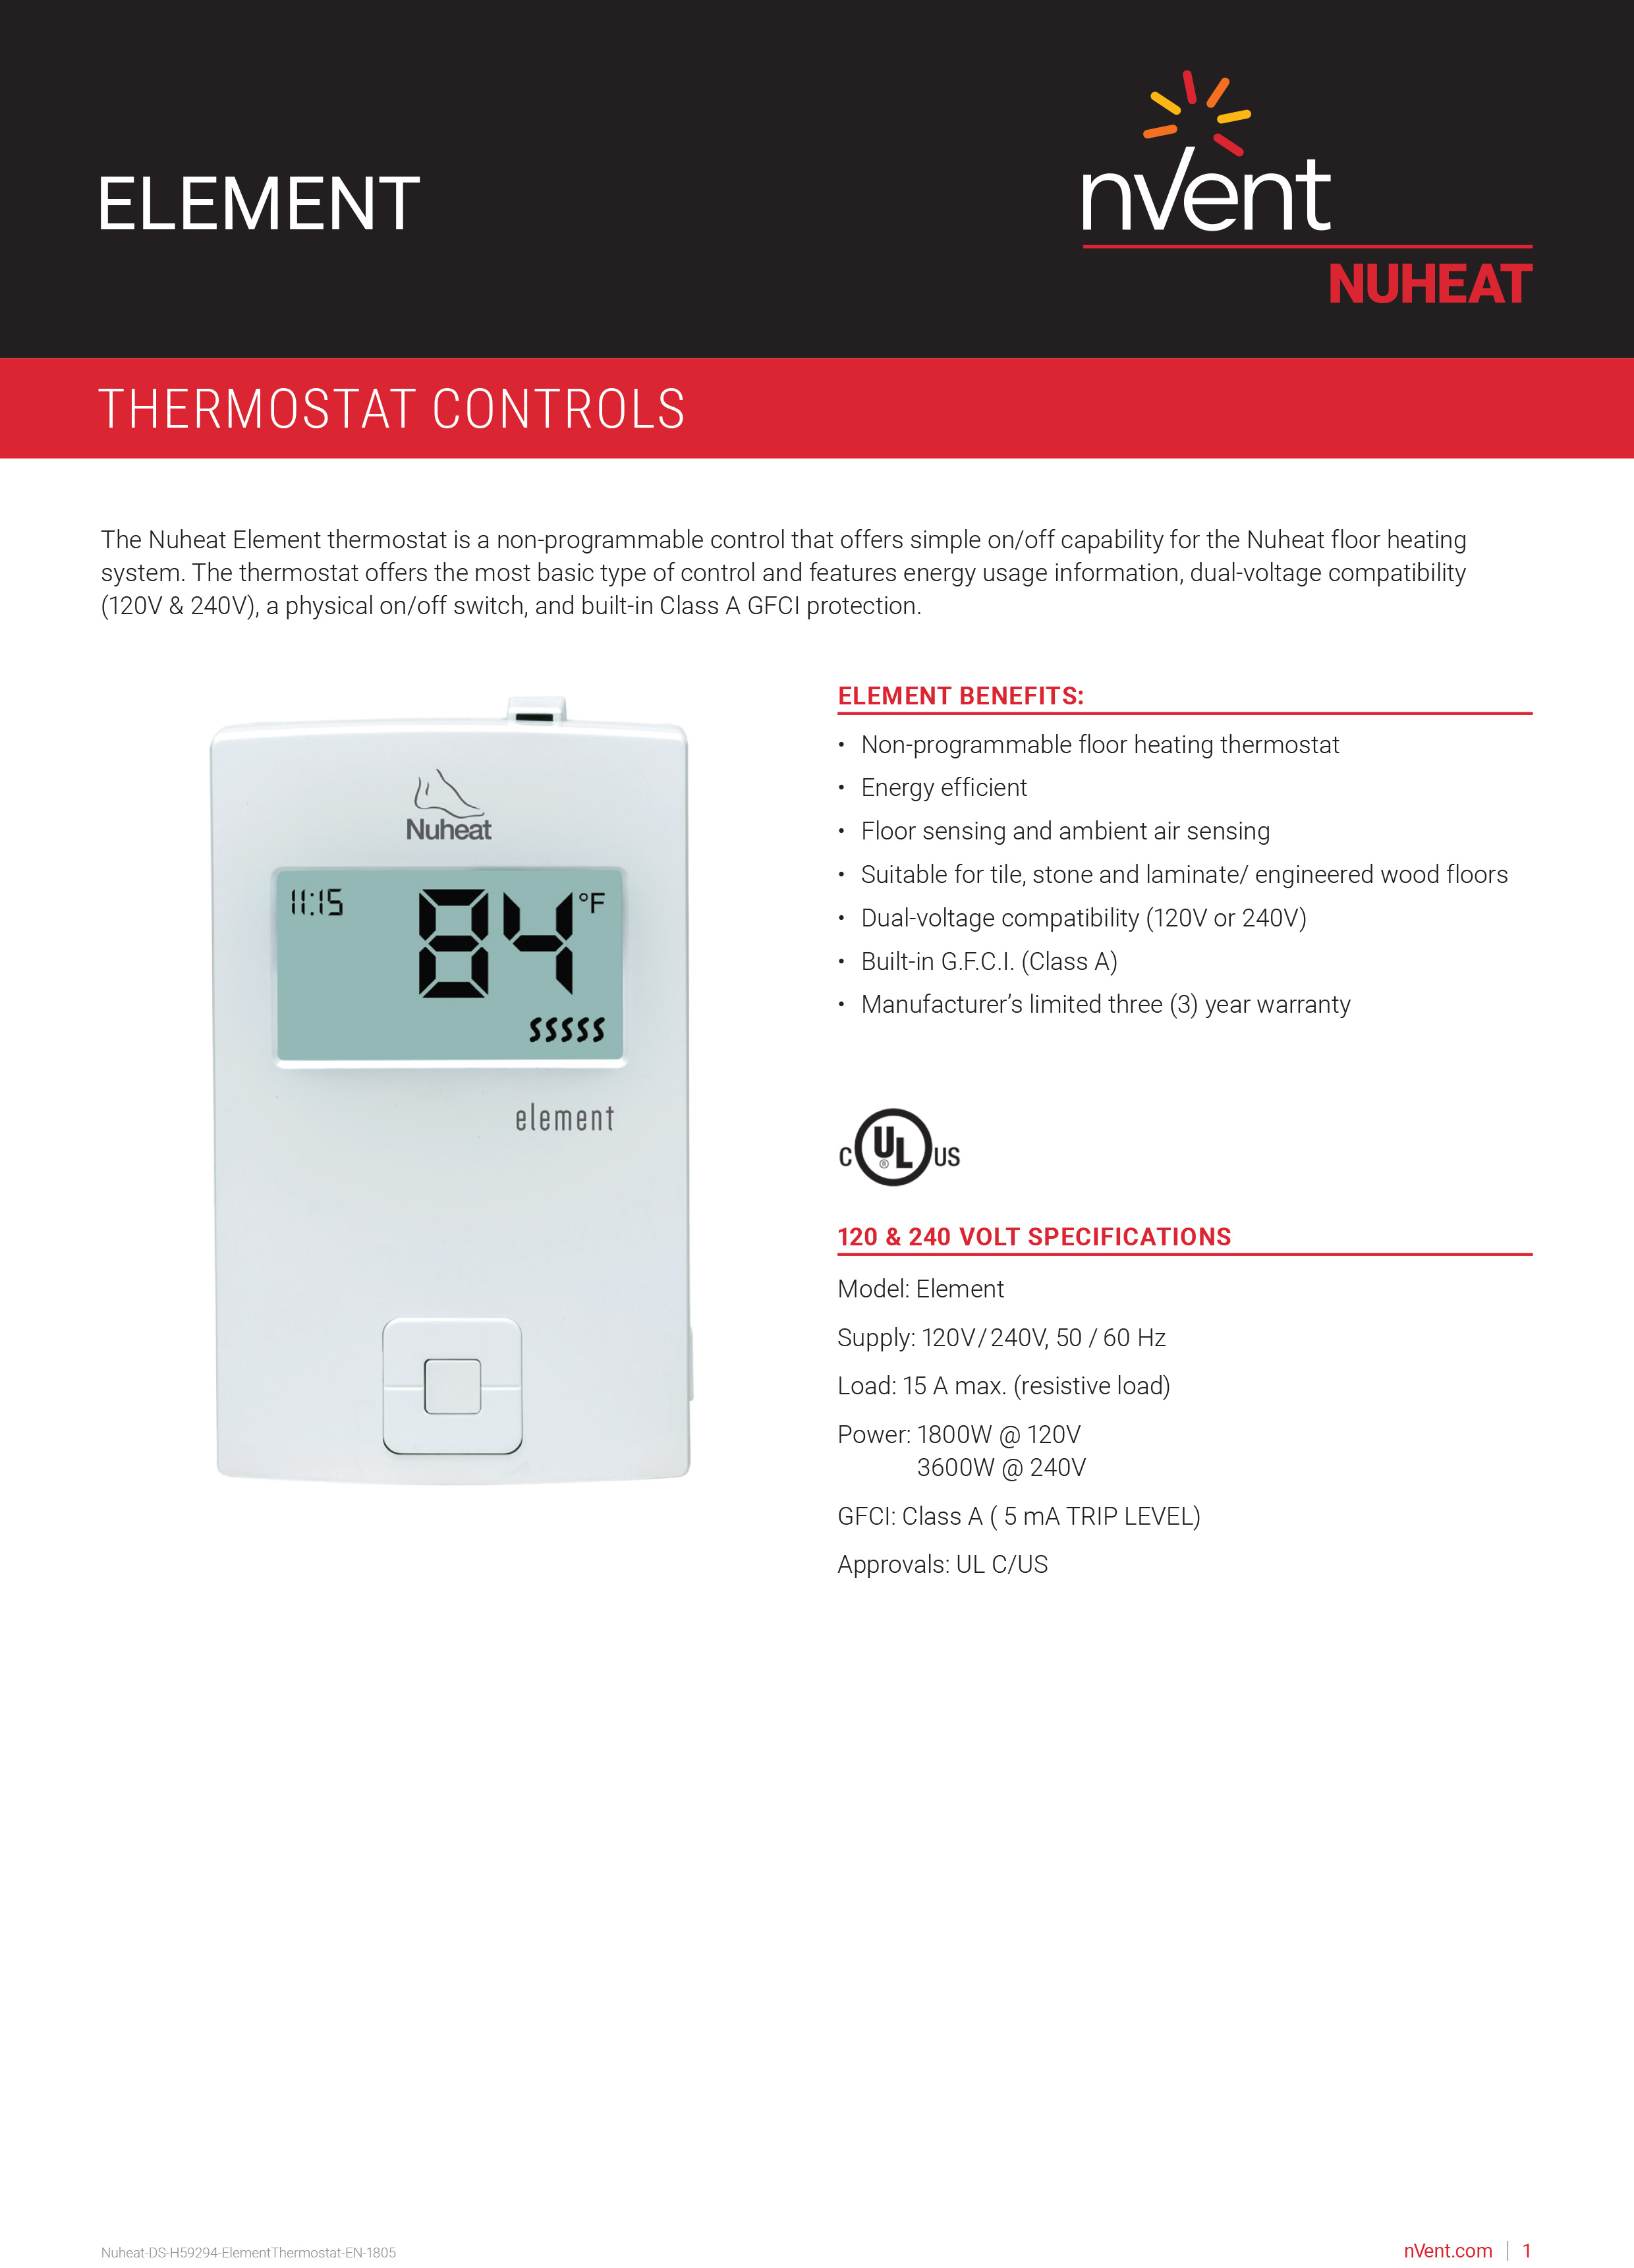 Element Thermostat By Nuheat Floor Heating